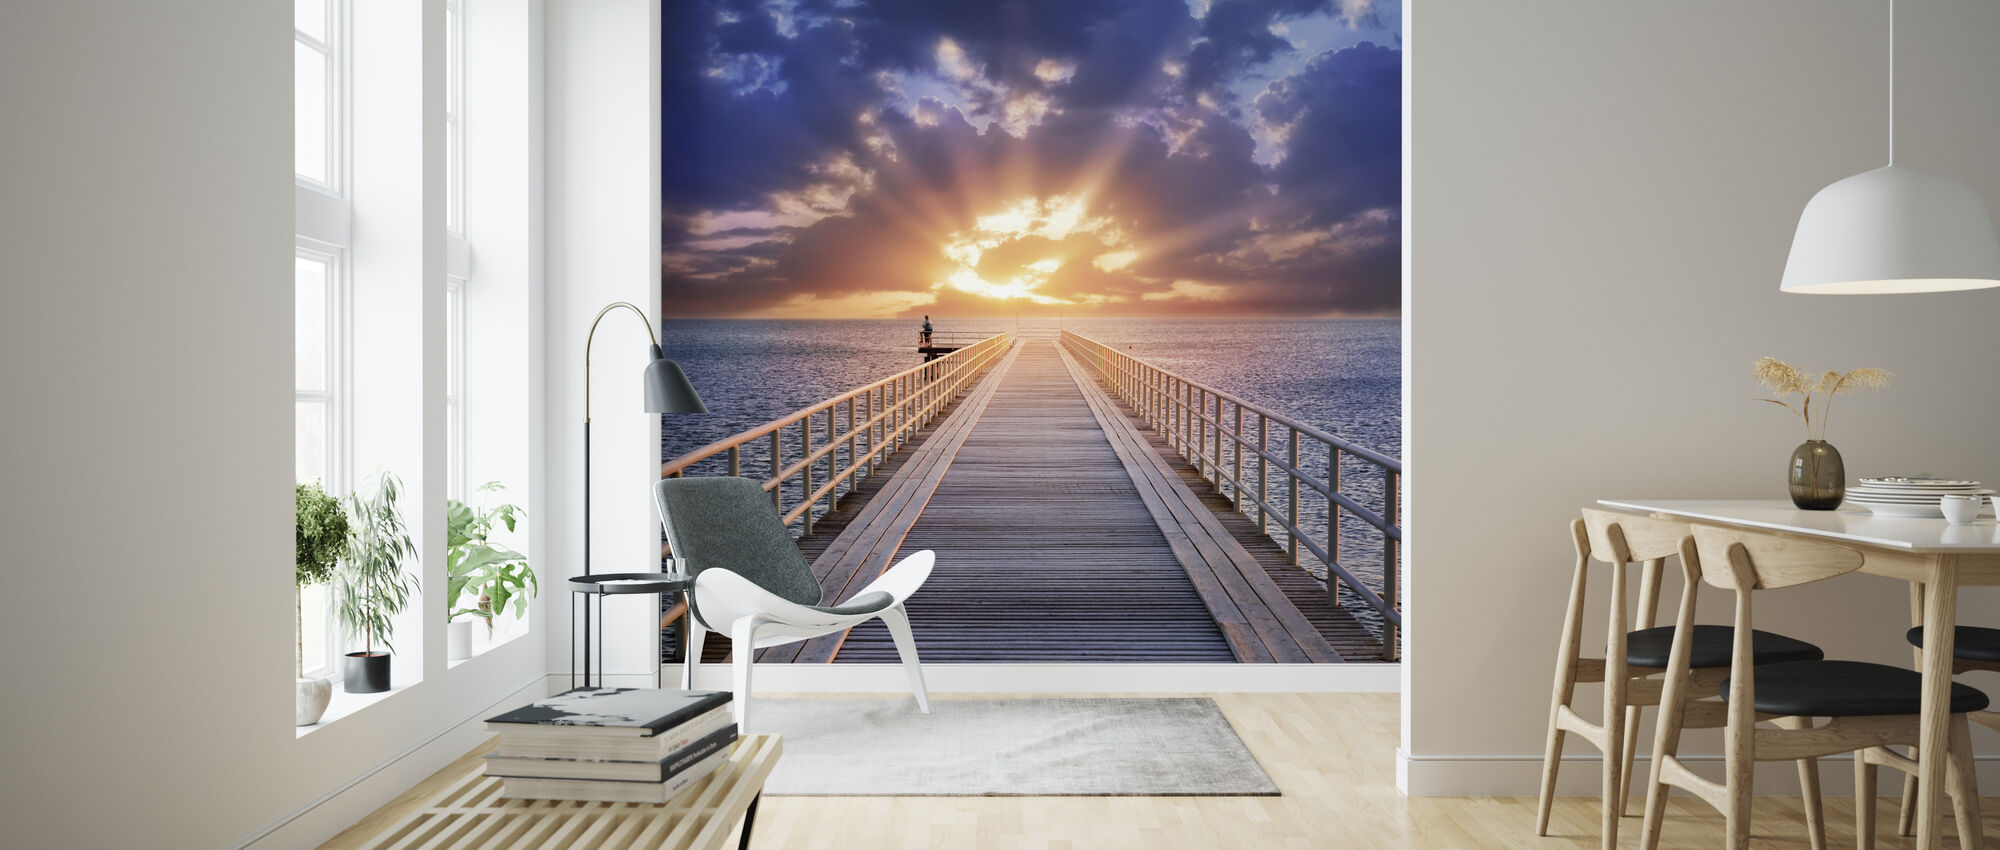 Backlight Bridge - Wallpaper - Living Room